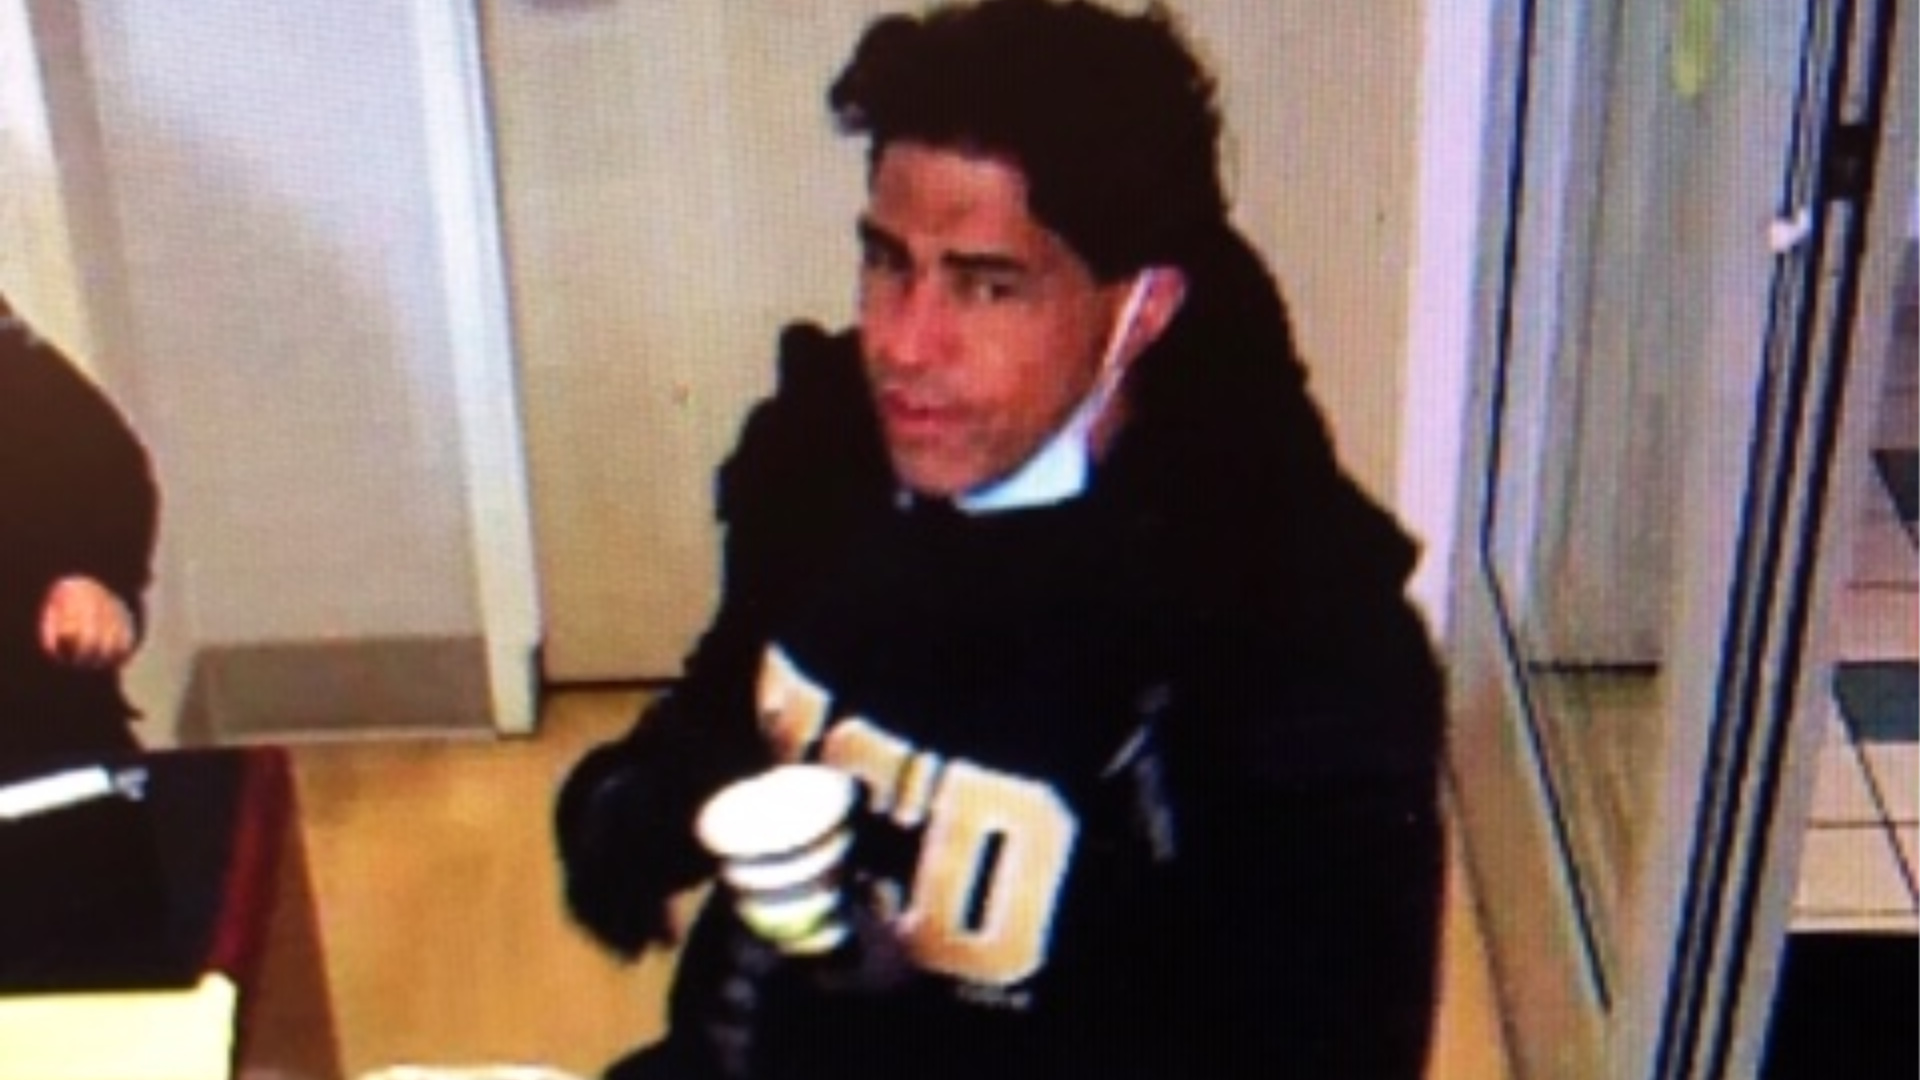 A surveillance image shows a man suspected of stealing a COVID-19 sample from a Davis hospital. (Davis Police via KTXL)